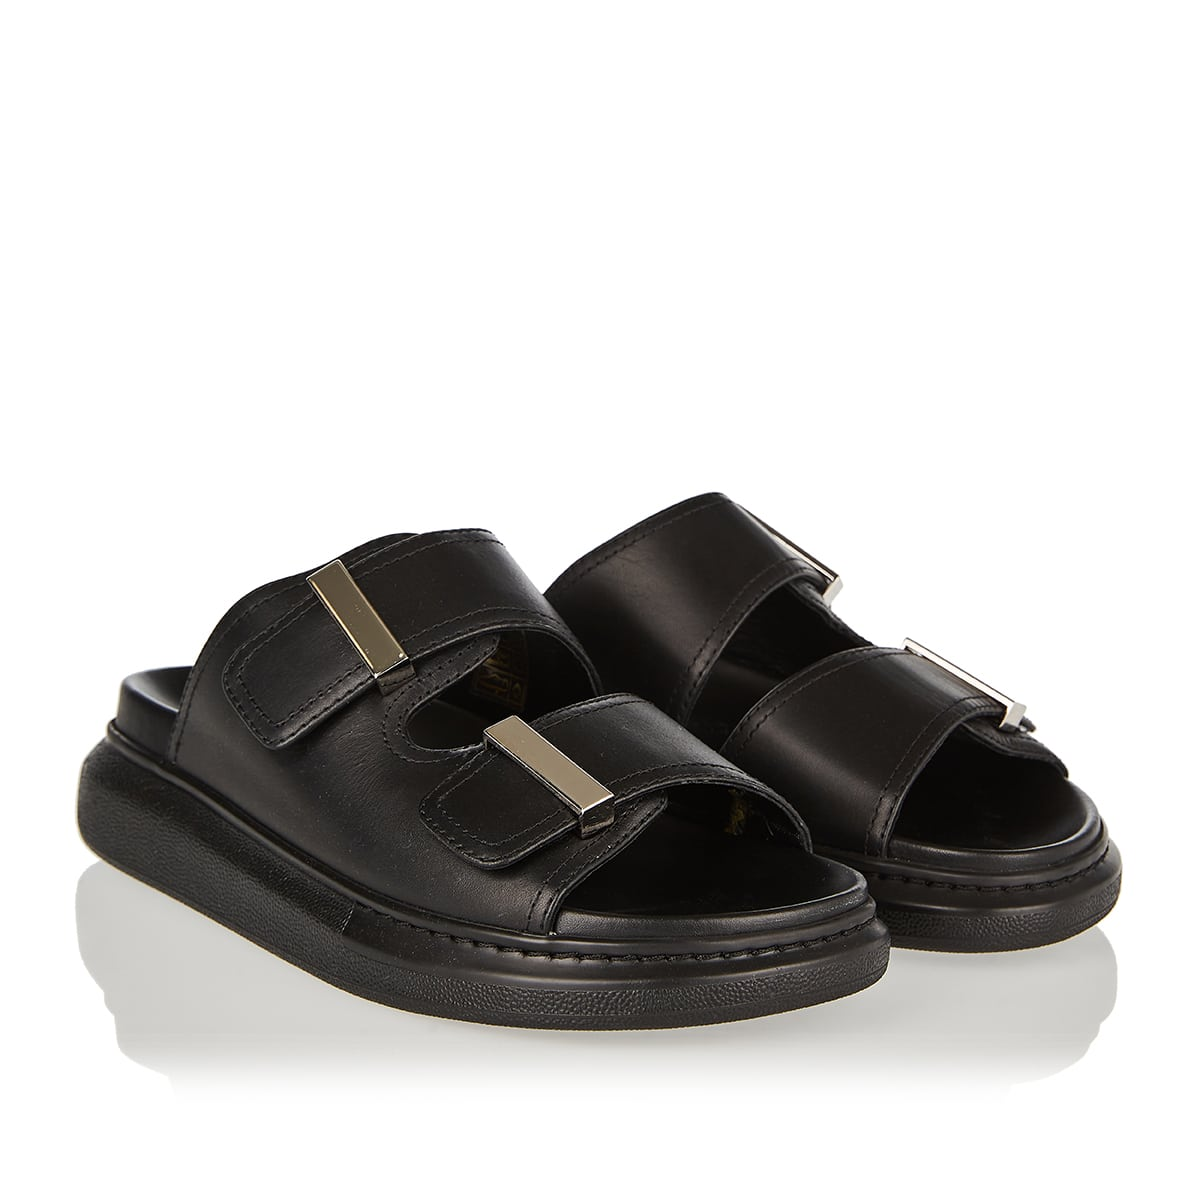 Oversized-sole leather slides